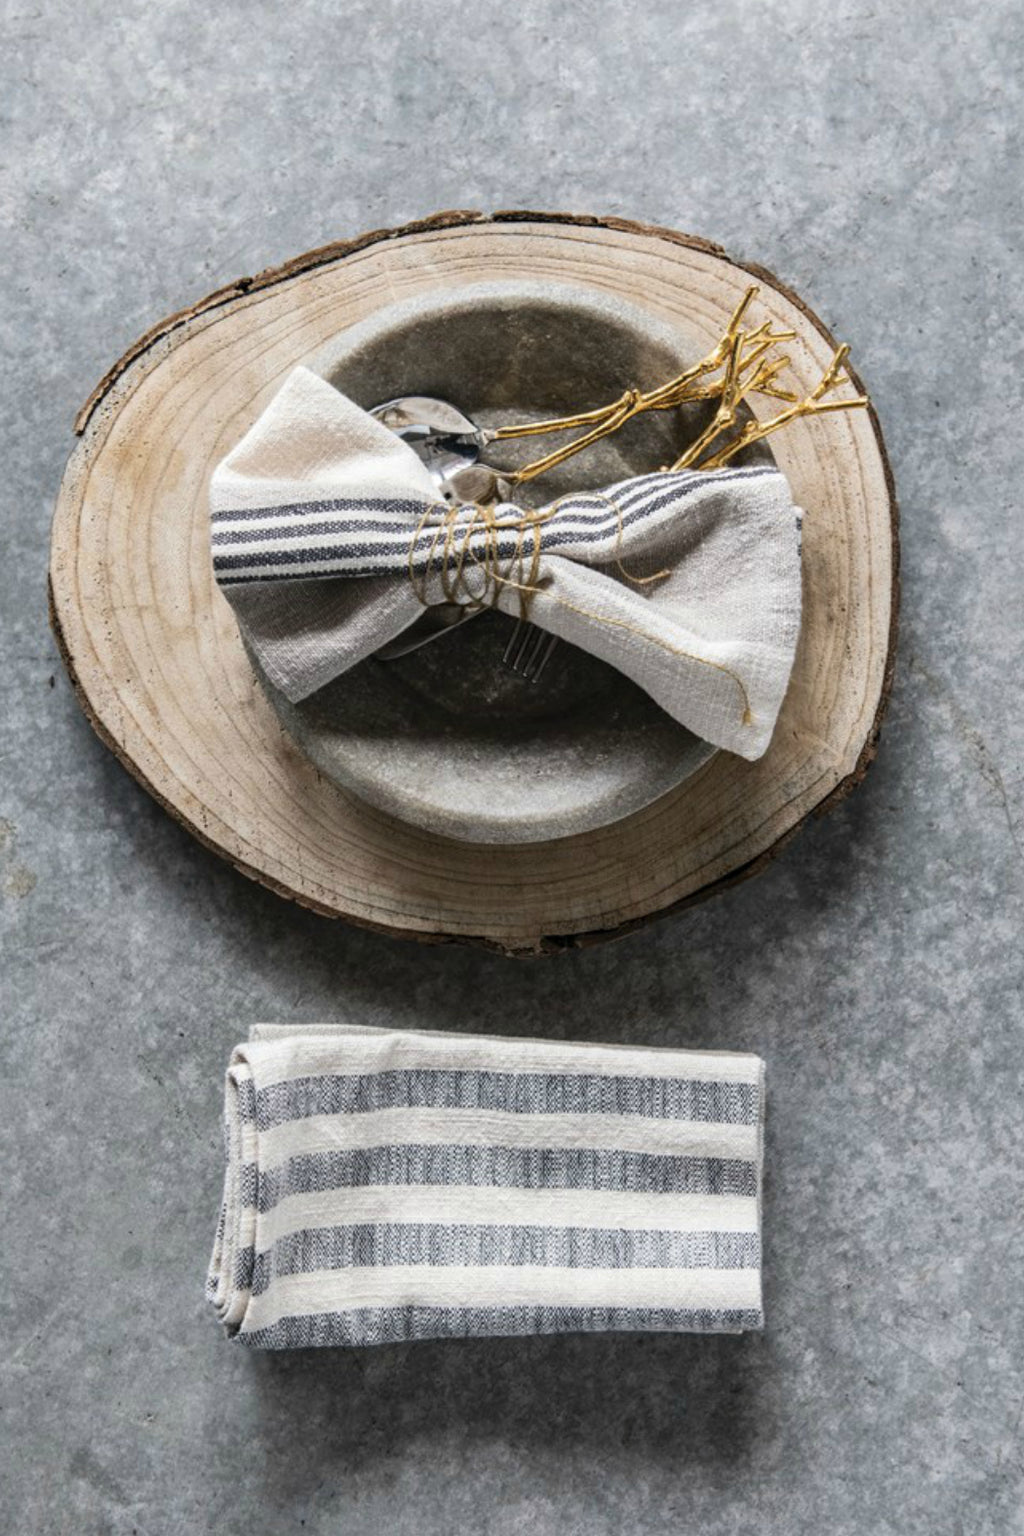 Creative Co-Op Woven Cotton Striped Napkins